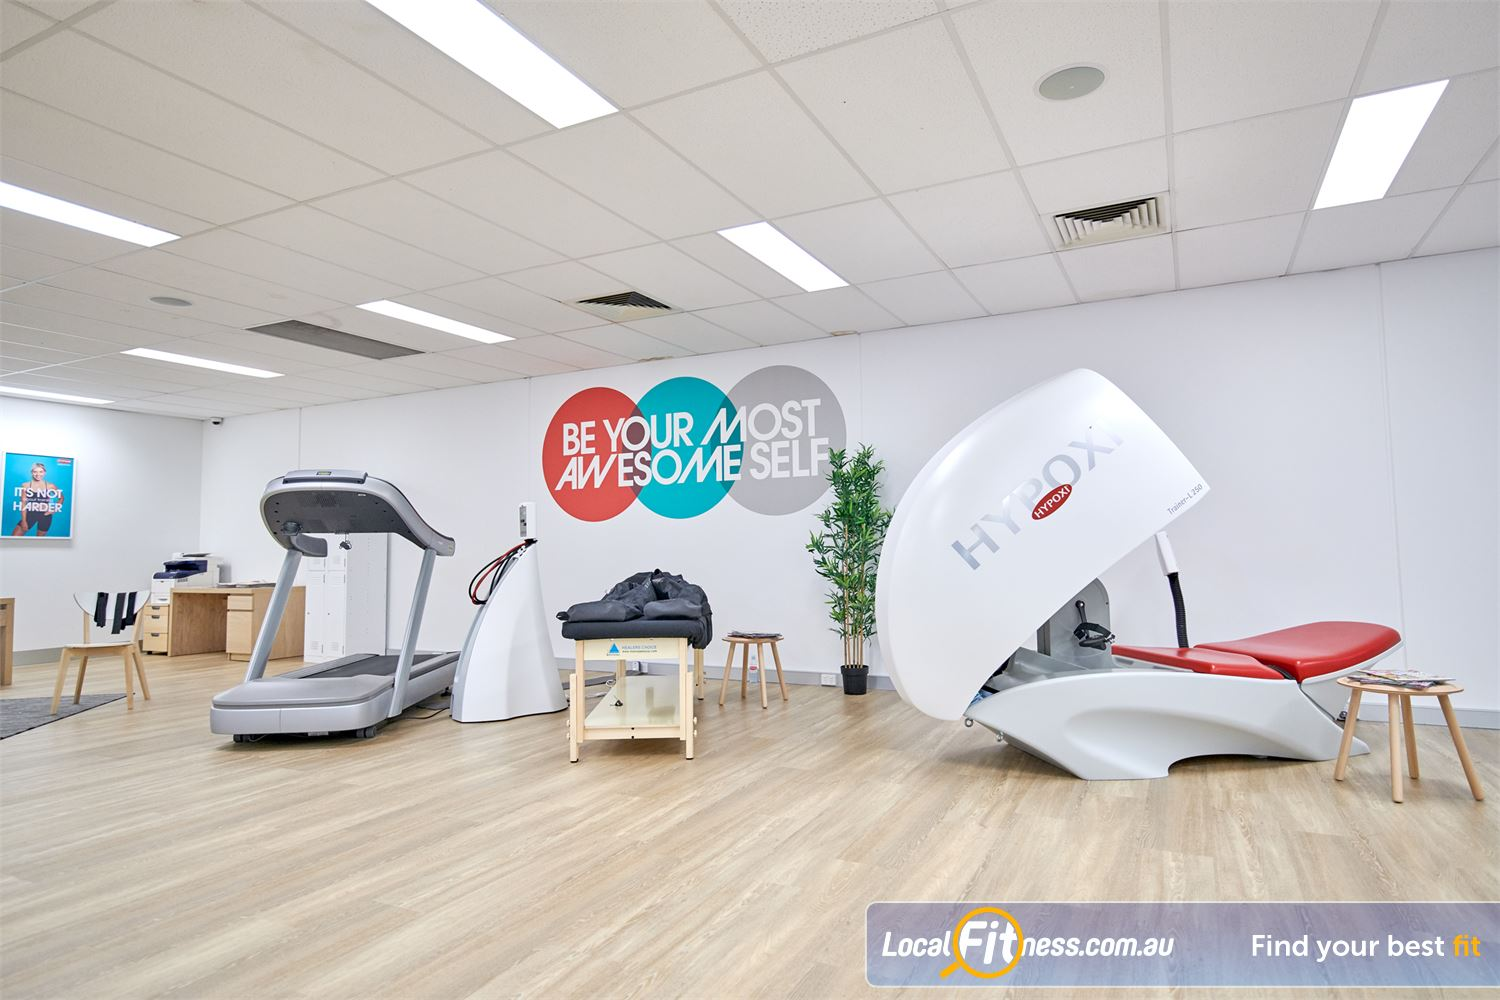 HYPOXI Weight Loss Camberwell Welcome to the future of exercise at HYPOXI Camberwell weight loss studio.